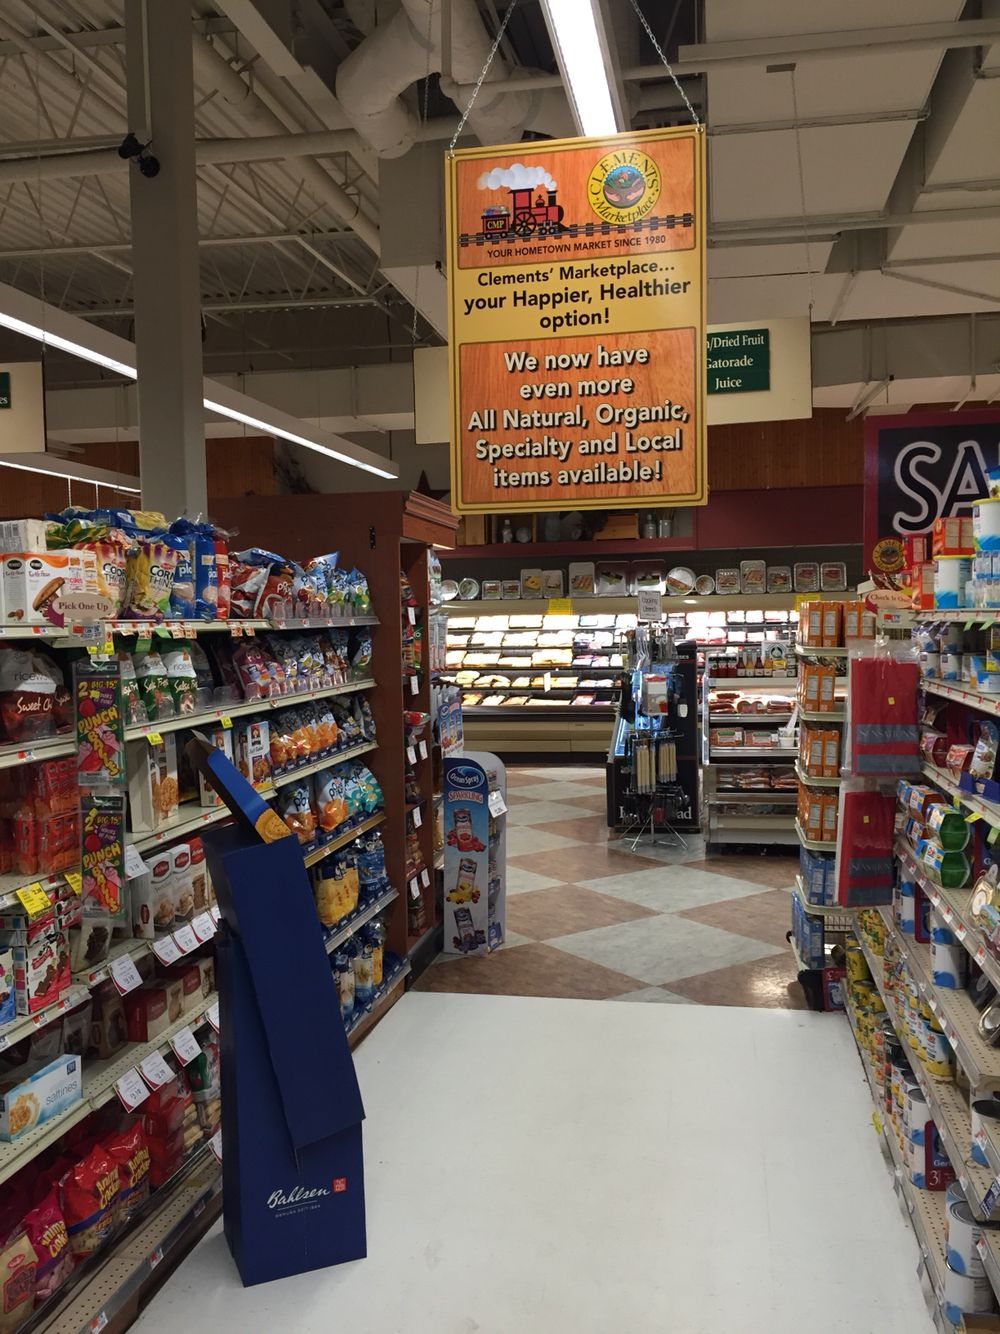 Aisle signs Marketing design, Healthy options, Are you happy